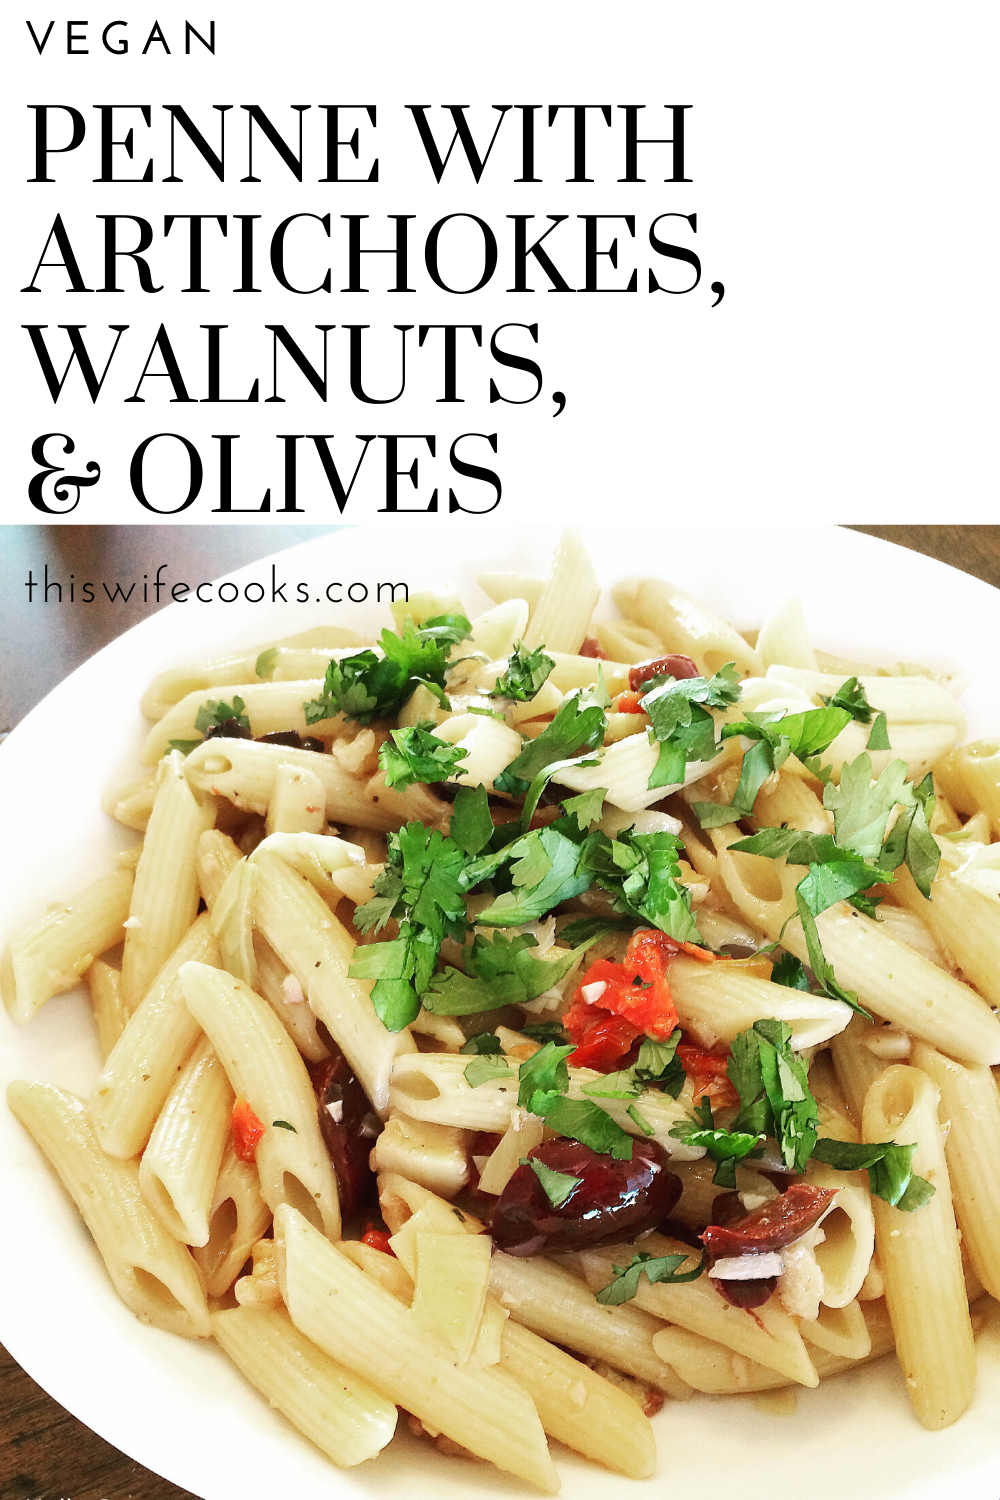 Penne with Artichokes, Walnuts, & Olives - The greatness of this dish is in its simplicity. The flavors of artichokes, walnuts, sun-dried tomatoes, kalamata olives all work so well together. via @thiswifecooks